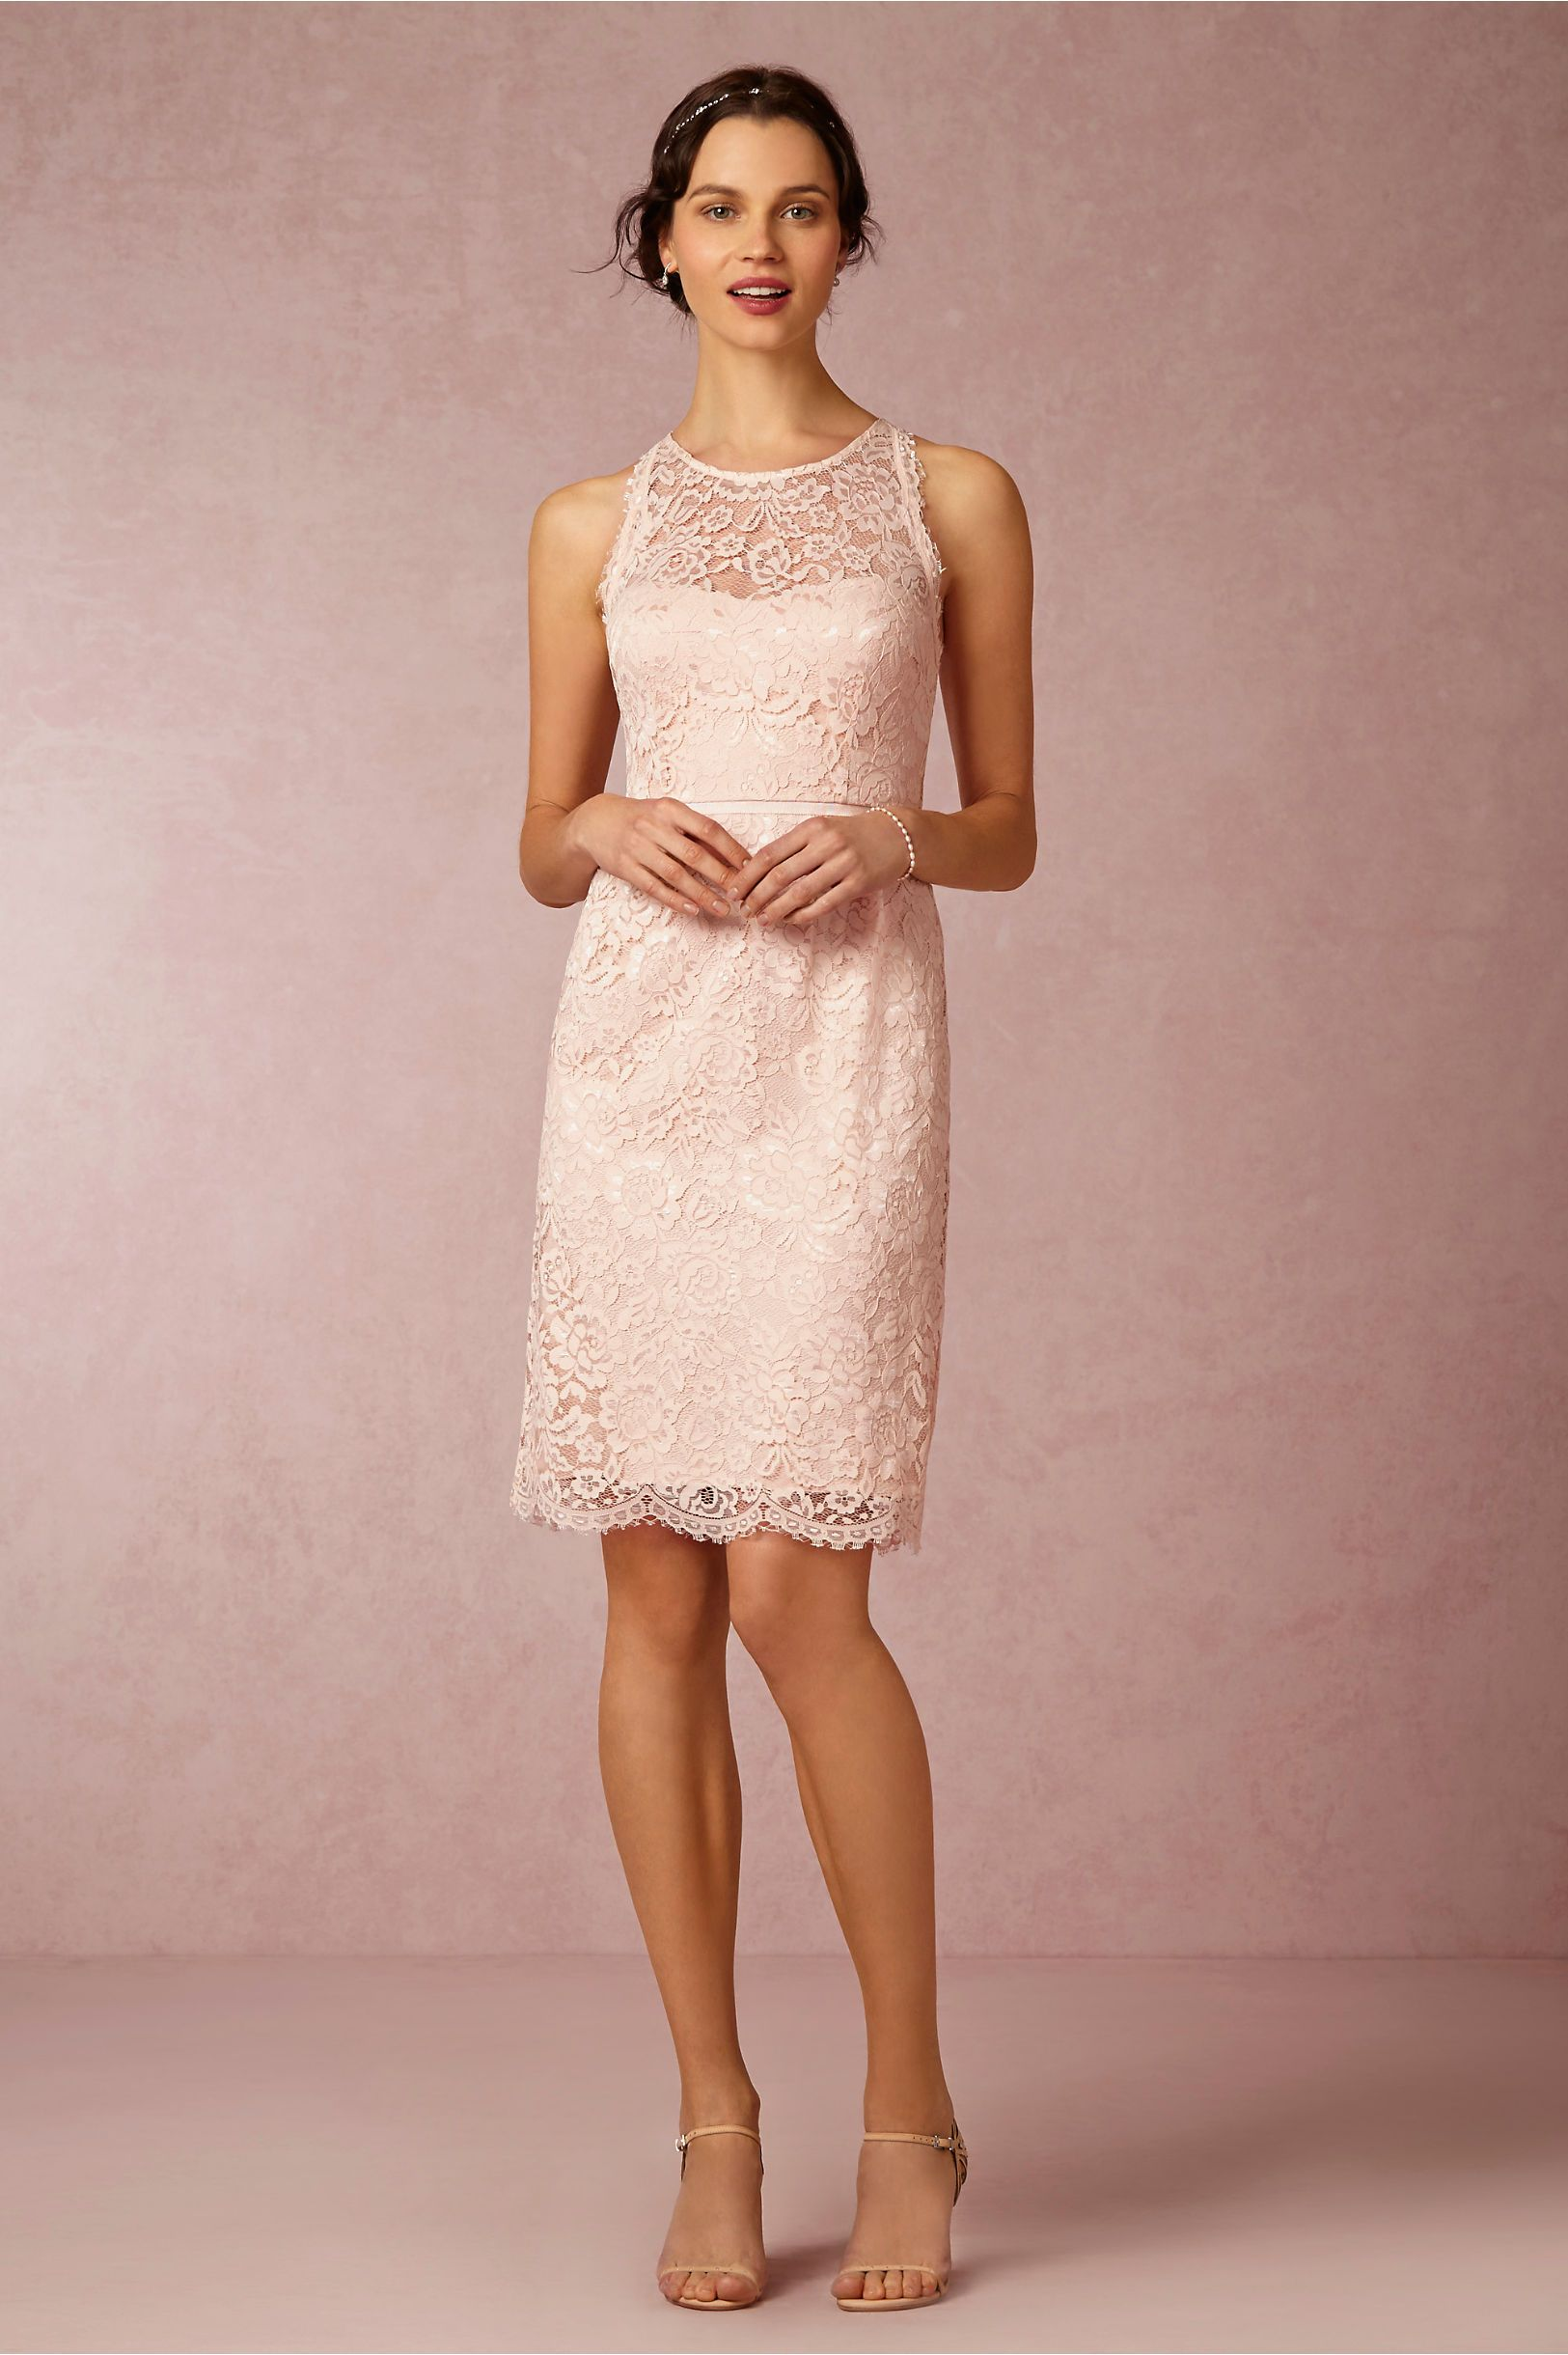 Pink cocktail dress for wedding  and the navy would go with the kilt  Sloane Dress from BHLDN